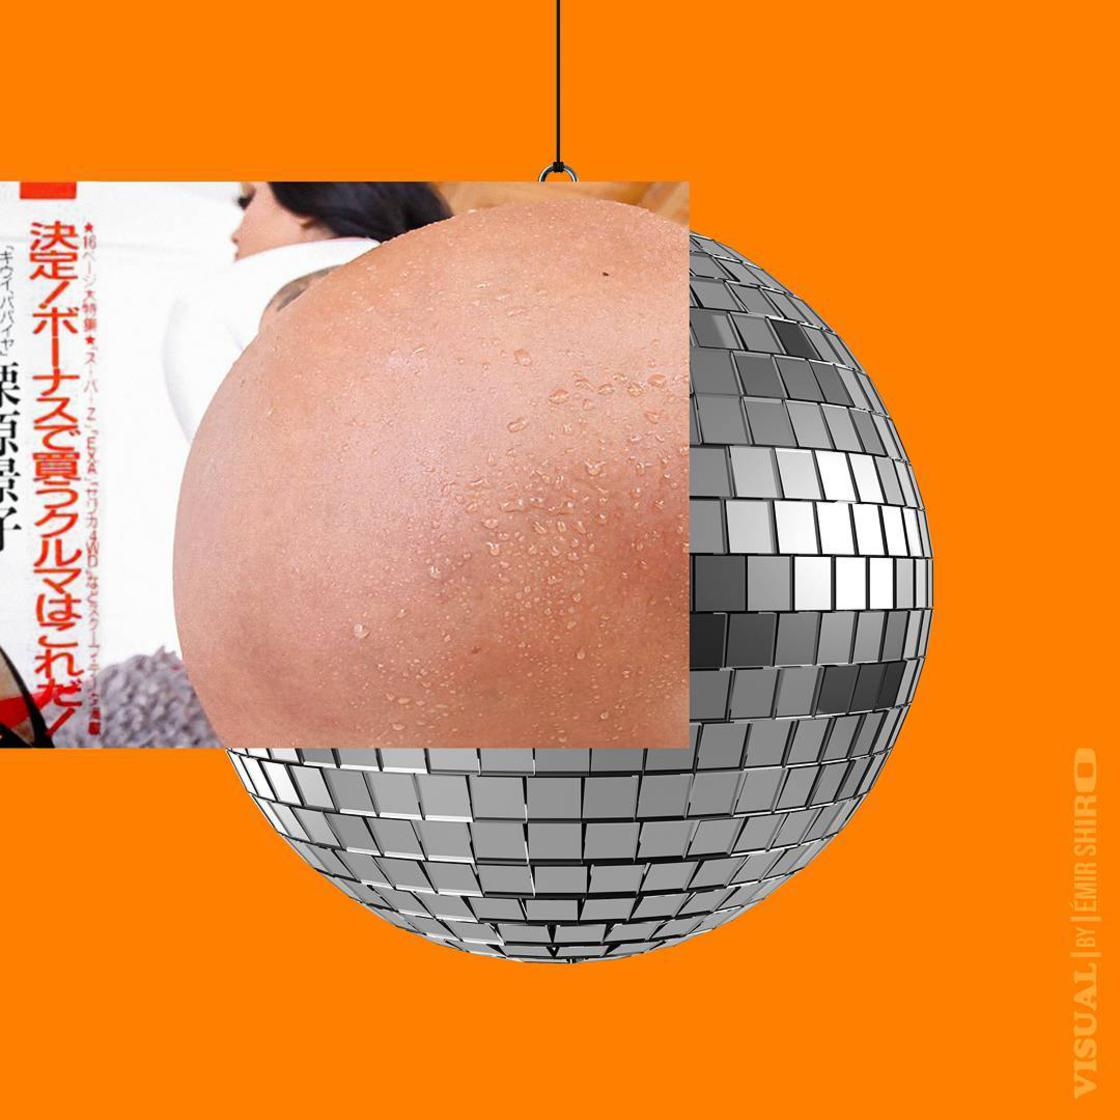 Fighting censorship on social networks with suggestive collages